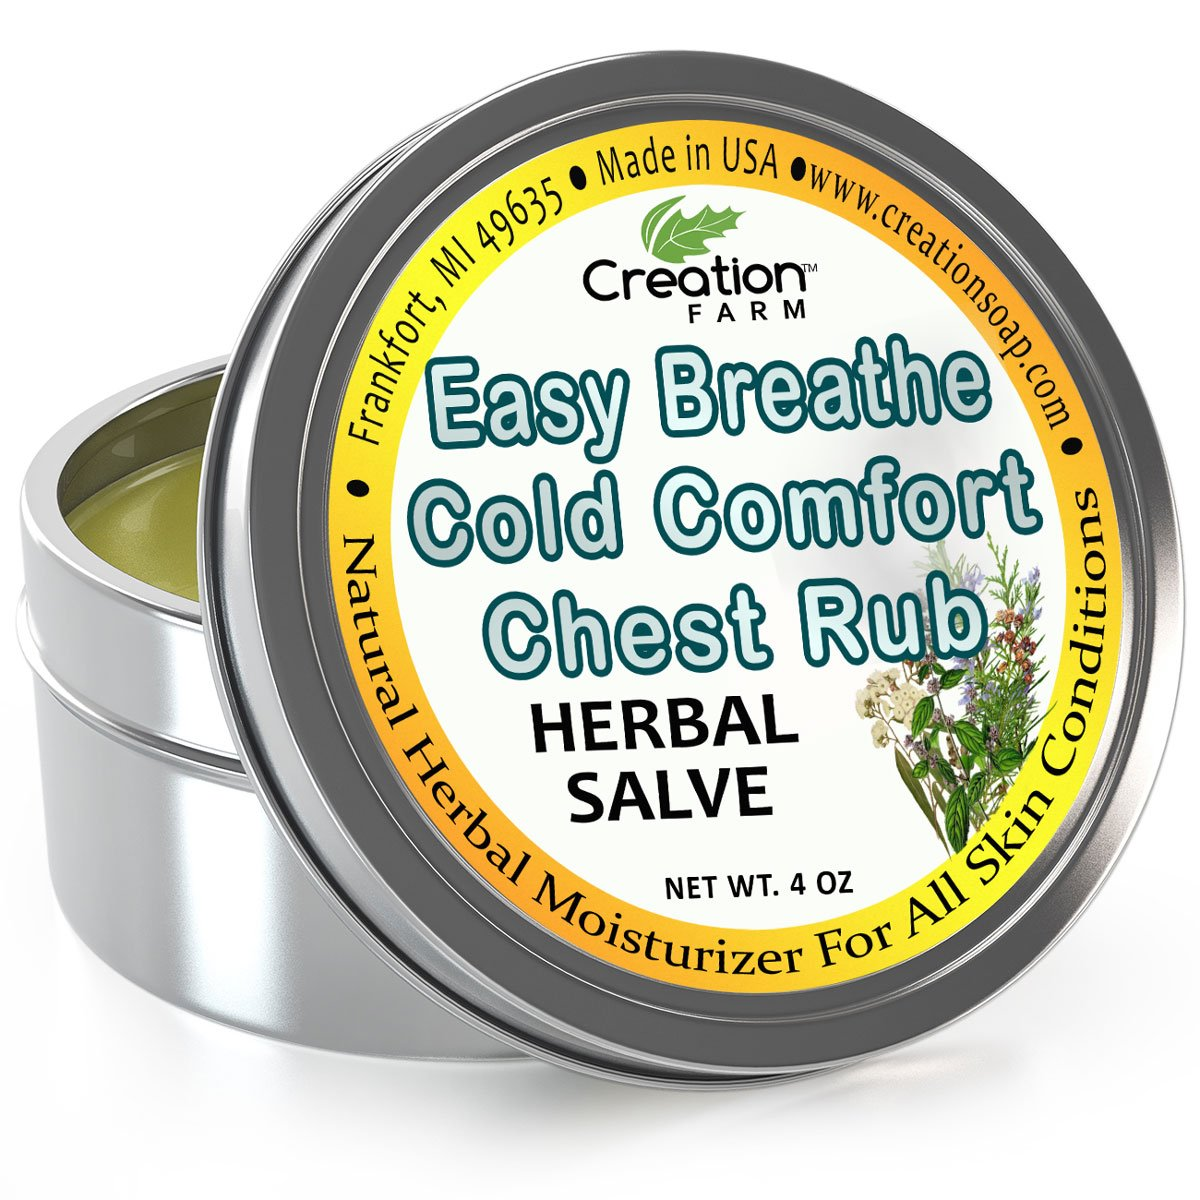 Cold Comfort Easy Breathe Chest Rub Large 4 Oz Tin - All Natural Botanical Ingredients from Creation Farm